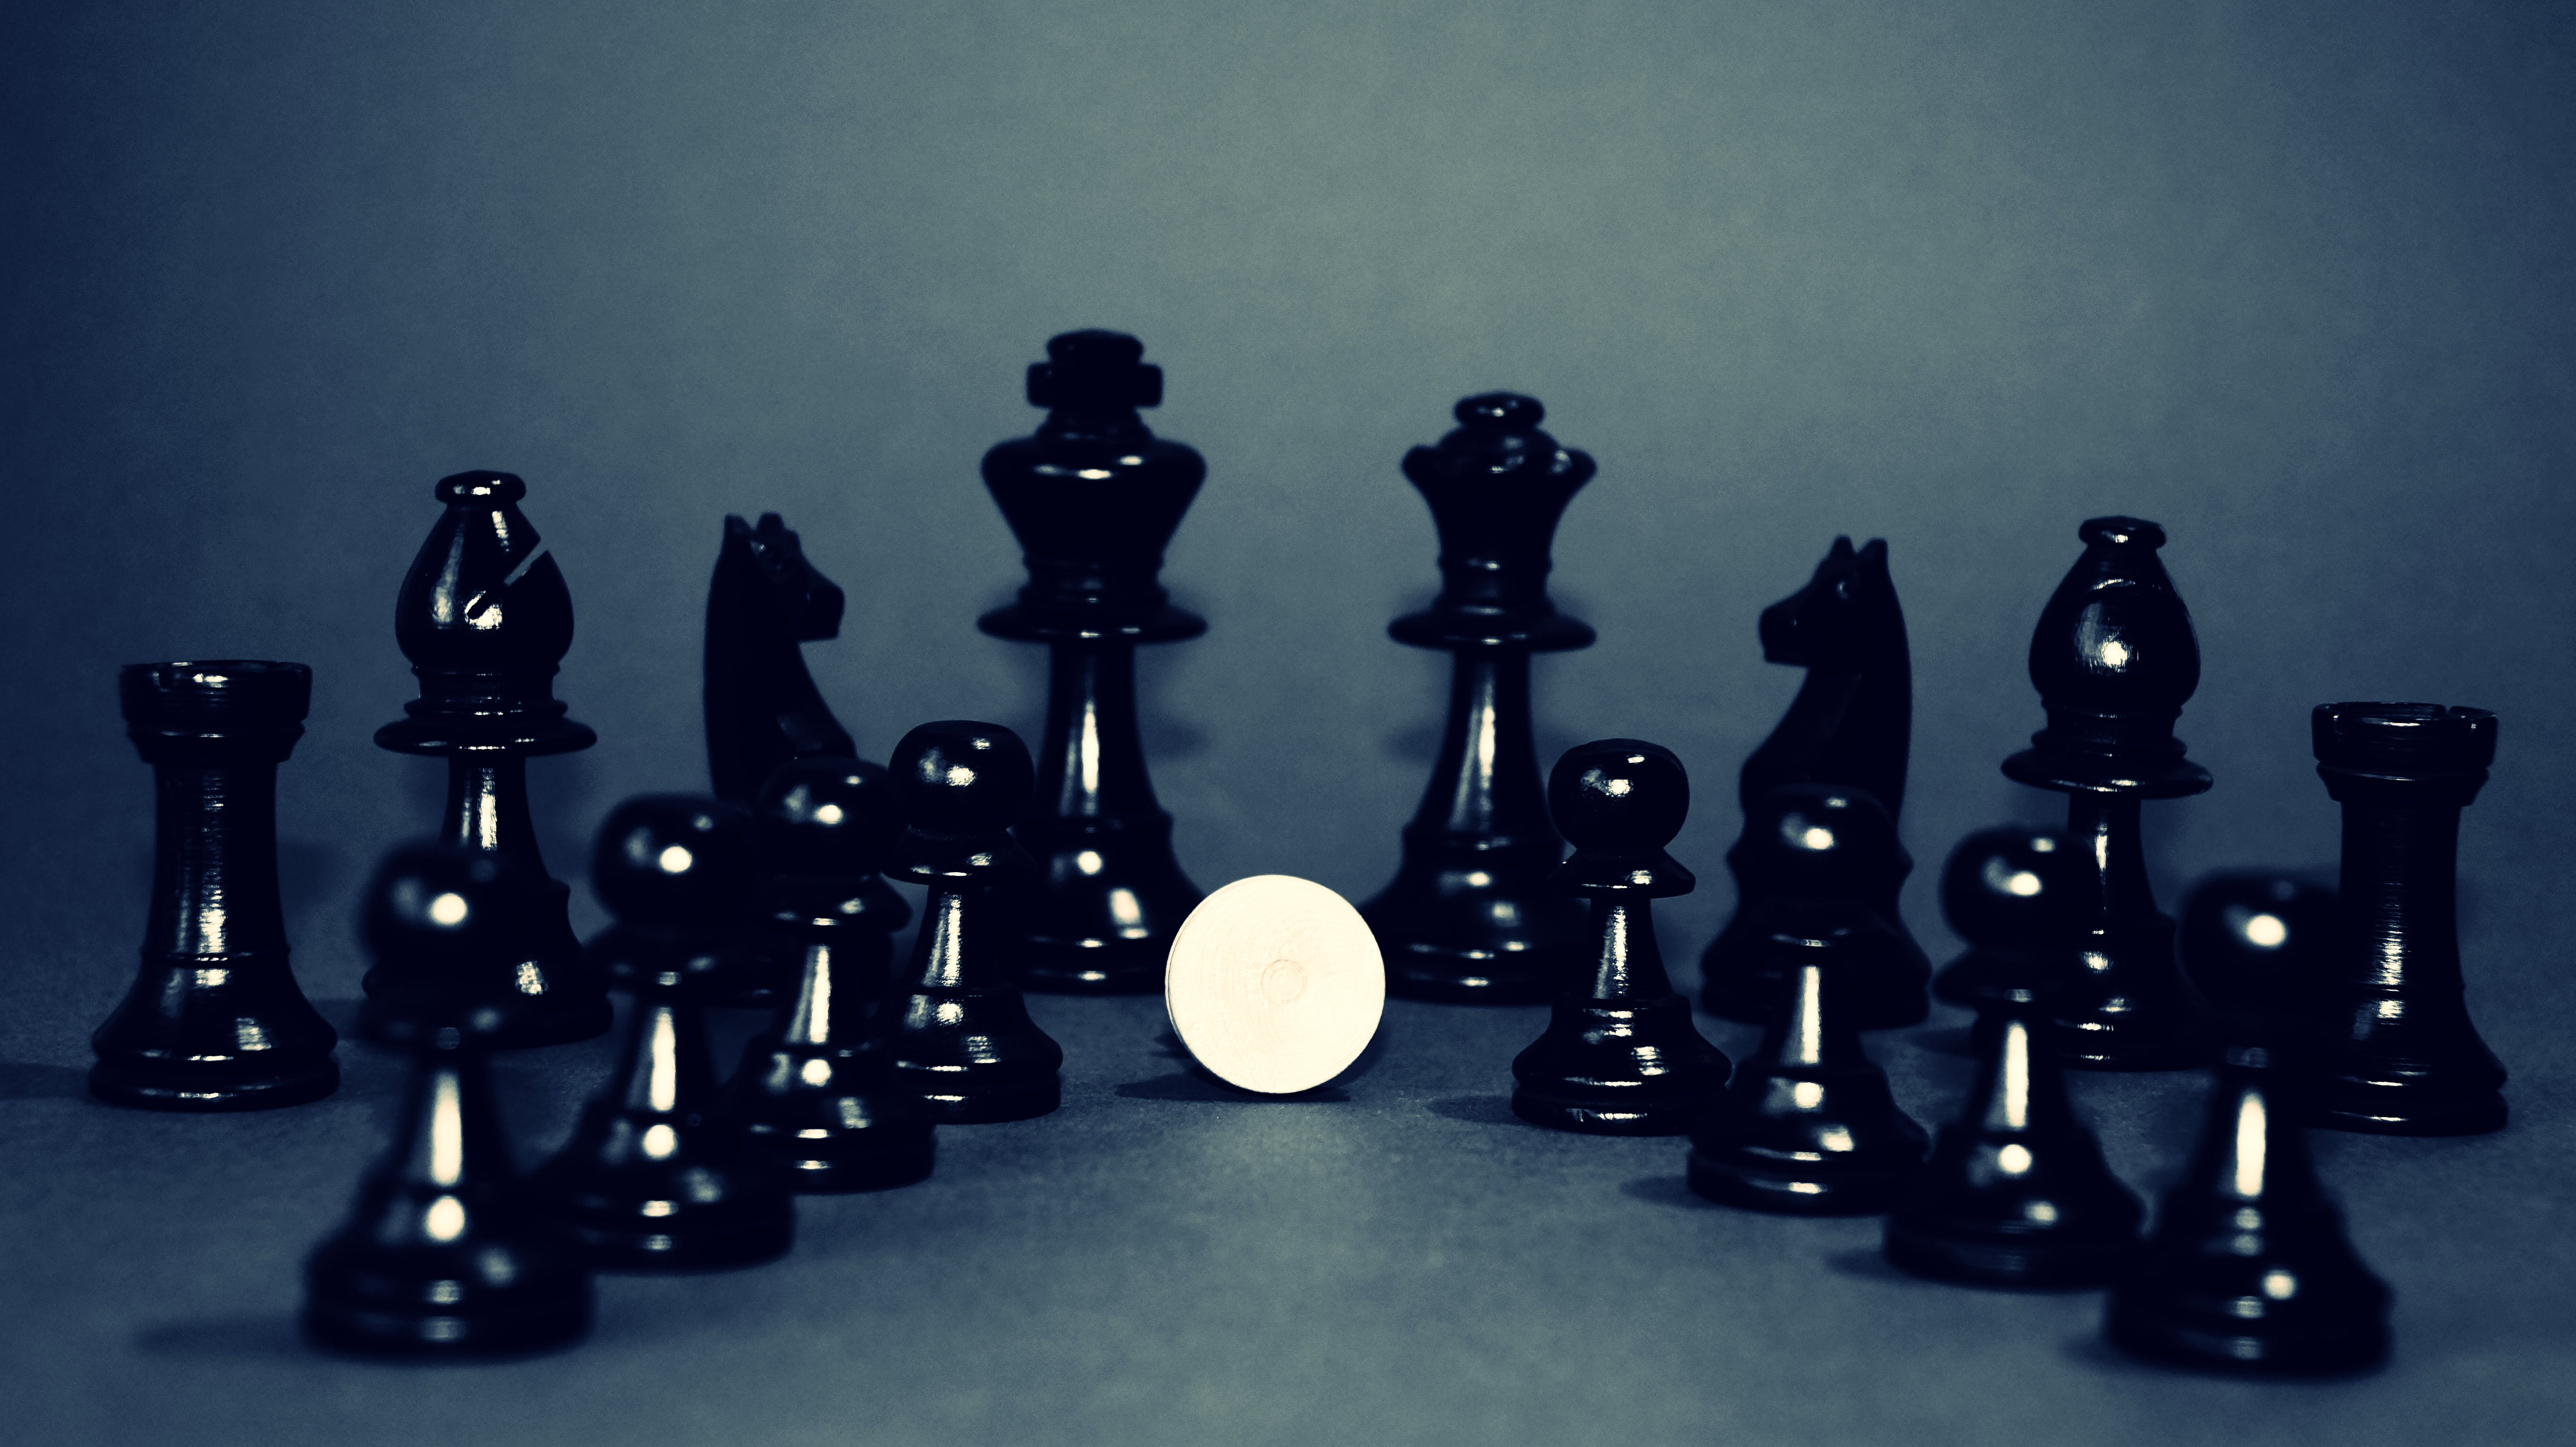 black and white, chess, chess pieces